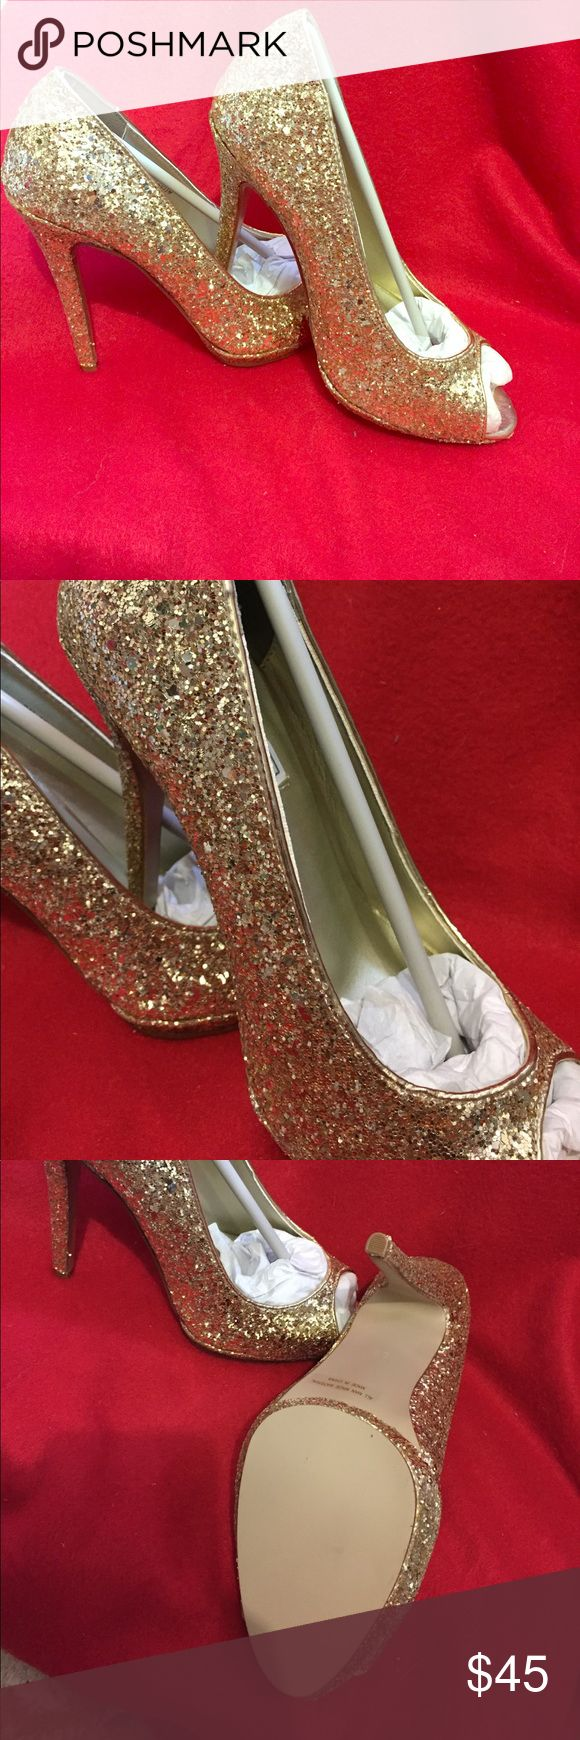 NWOT Touch Up Gold Pumps These pumps 👠 are stunning. You will feel like a princess wearing them. They are new and have no scuff marks. Touch Ups Shoes Heels